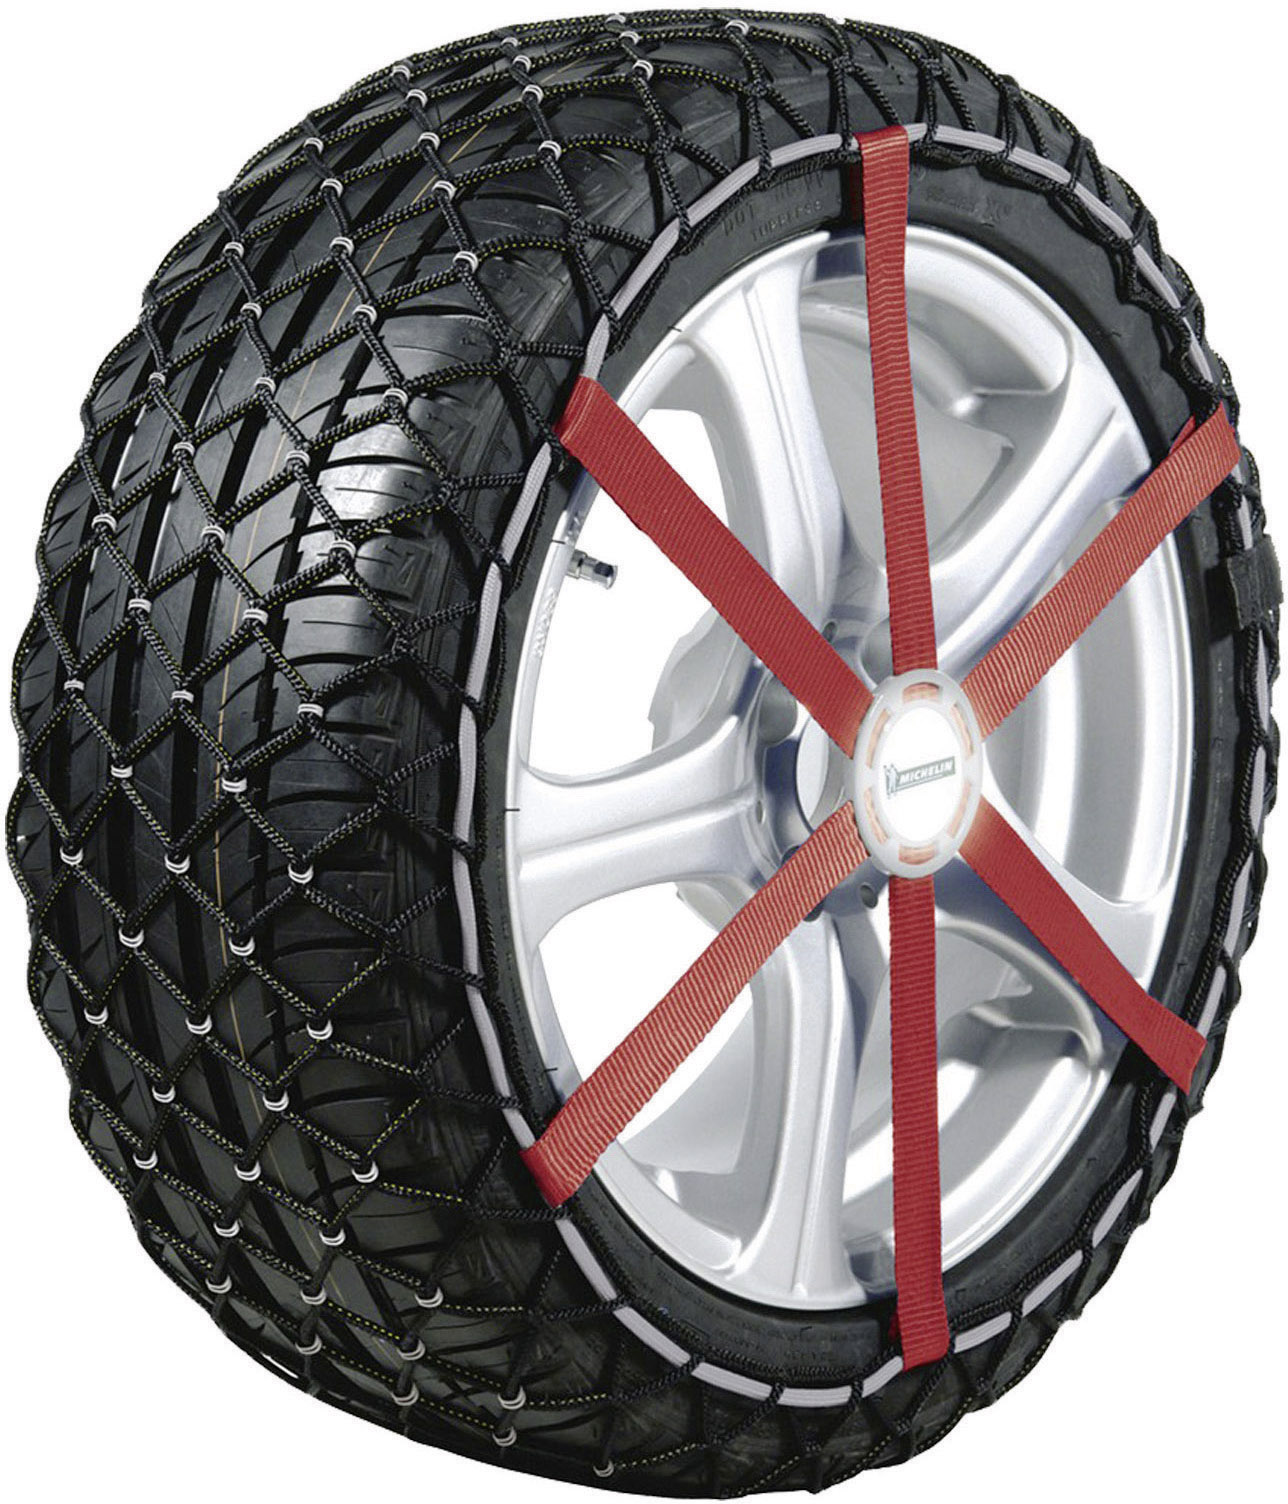 michelin easygrip